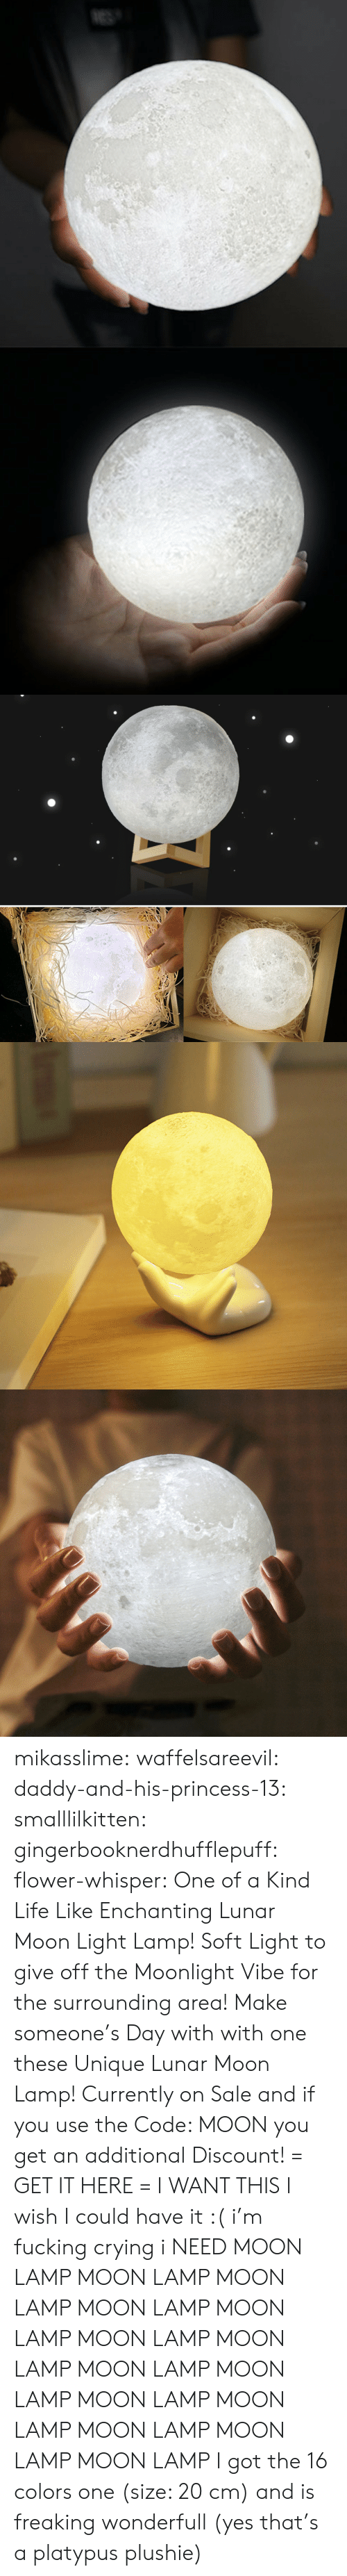 Plushie: mikasslime: waffelsareevil:   daddy-and-his-princess-13:  smalllilkitten:   gingerbooknerdhufflepuff:   flower-whisper:  One of a Kind Life Like Enchanting Lunar Moon Light Lamp! Soft Light to give off the Moonlight Vibe for the surrounding area! Make someone's Day with with one these Unique Lunar Moon Lamp! Currently on Sale and if you use the Code: MOON you get an additional Discount! = GET IT HERE =   I WANT THIS   I wish I could have it :(   i'm fucking crying i NEED   MOON LAMP MOON LAMP MOON LAMP MOON LAMP MOON LAMP MOON LAMP MOON LAMP MOON LAMP MOON LAMP MOON LAMP MOON LAMP MOON LAMP MOON LAMP MOON LAMP     I got the 16 colors one (size: 20 cm) and is freaking wonderfull (yes that's a platypus plushie)